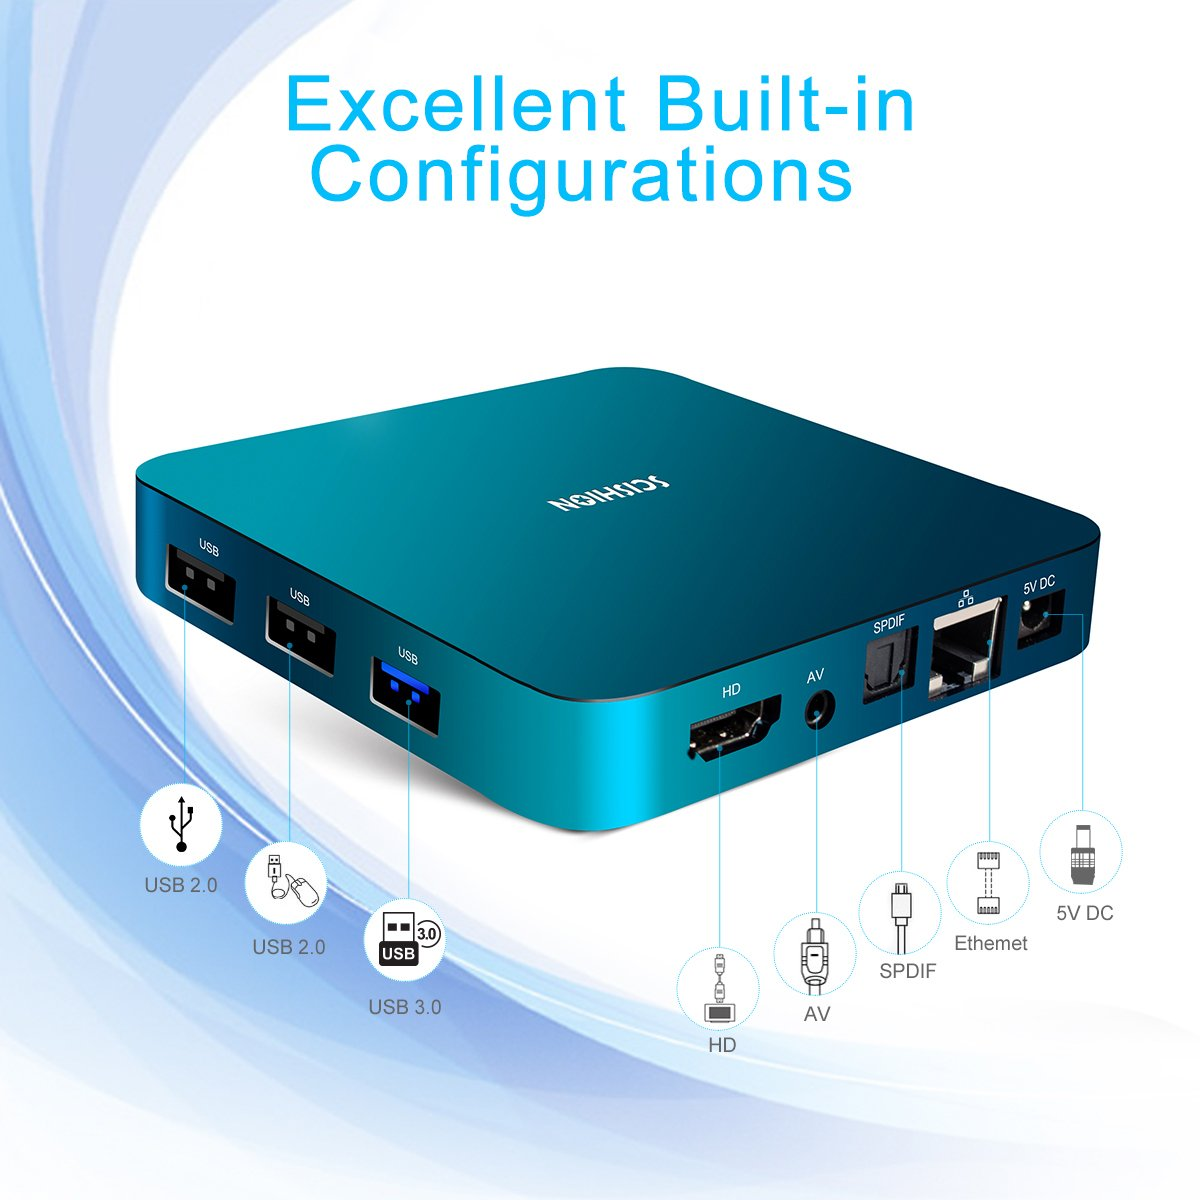 Android 8.1 TV Box with Voice Remote, RK3328 Quad Core 64bit 2GB DDR3 16GB eMMC Memory Smart TV Box with Bluetooth 4.0 WiFi Ethernet HDMI HD 4K Media Player Set Top Box by YAGALA (Image #7)